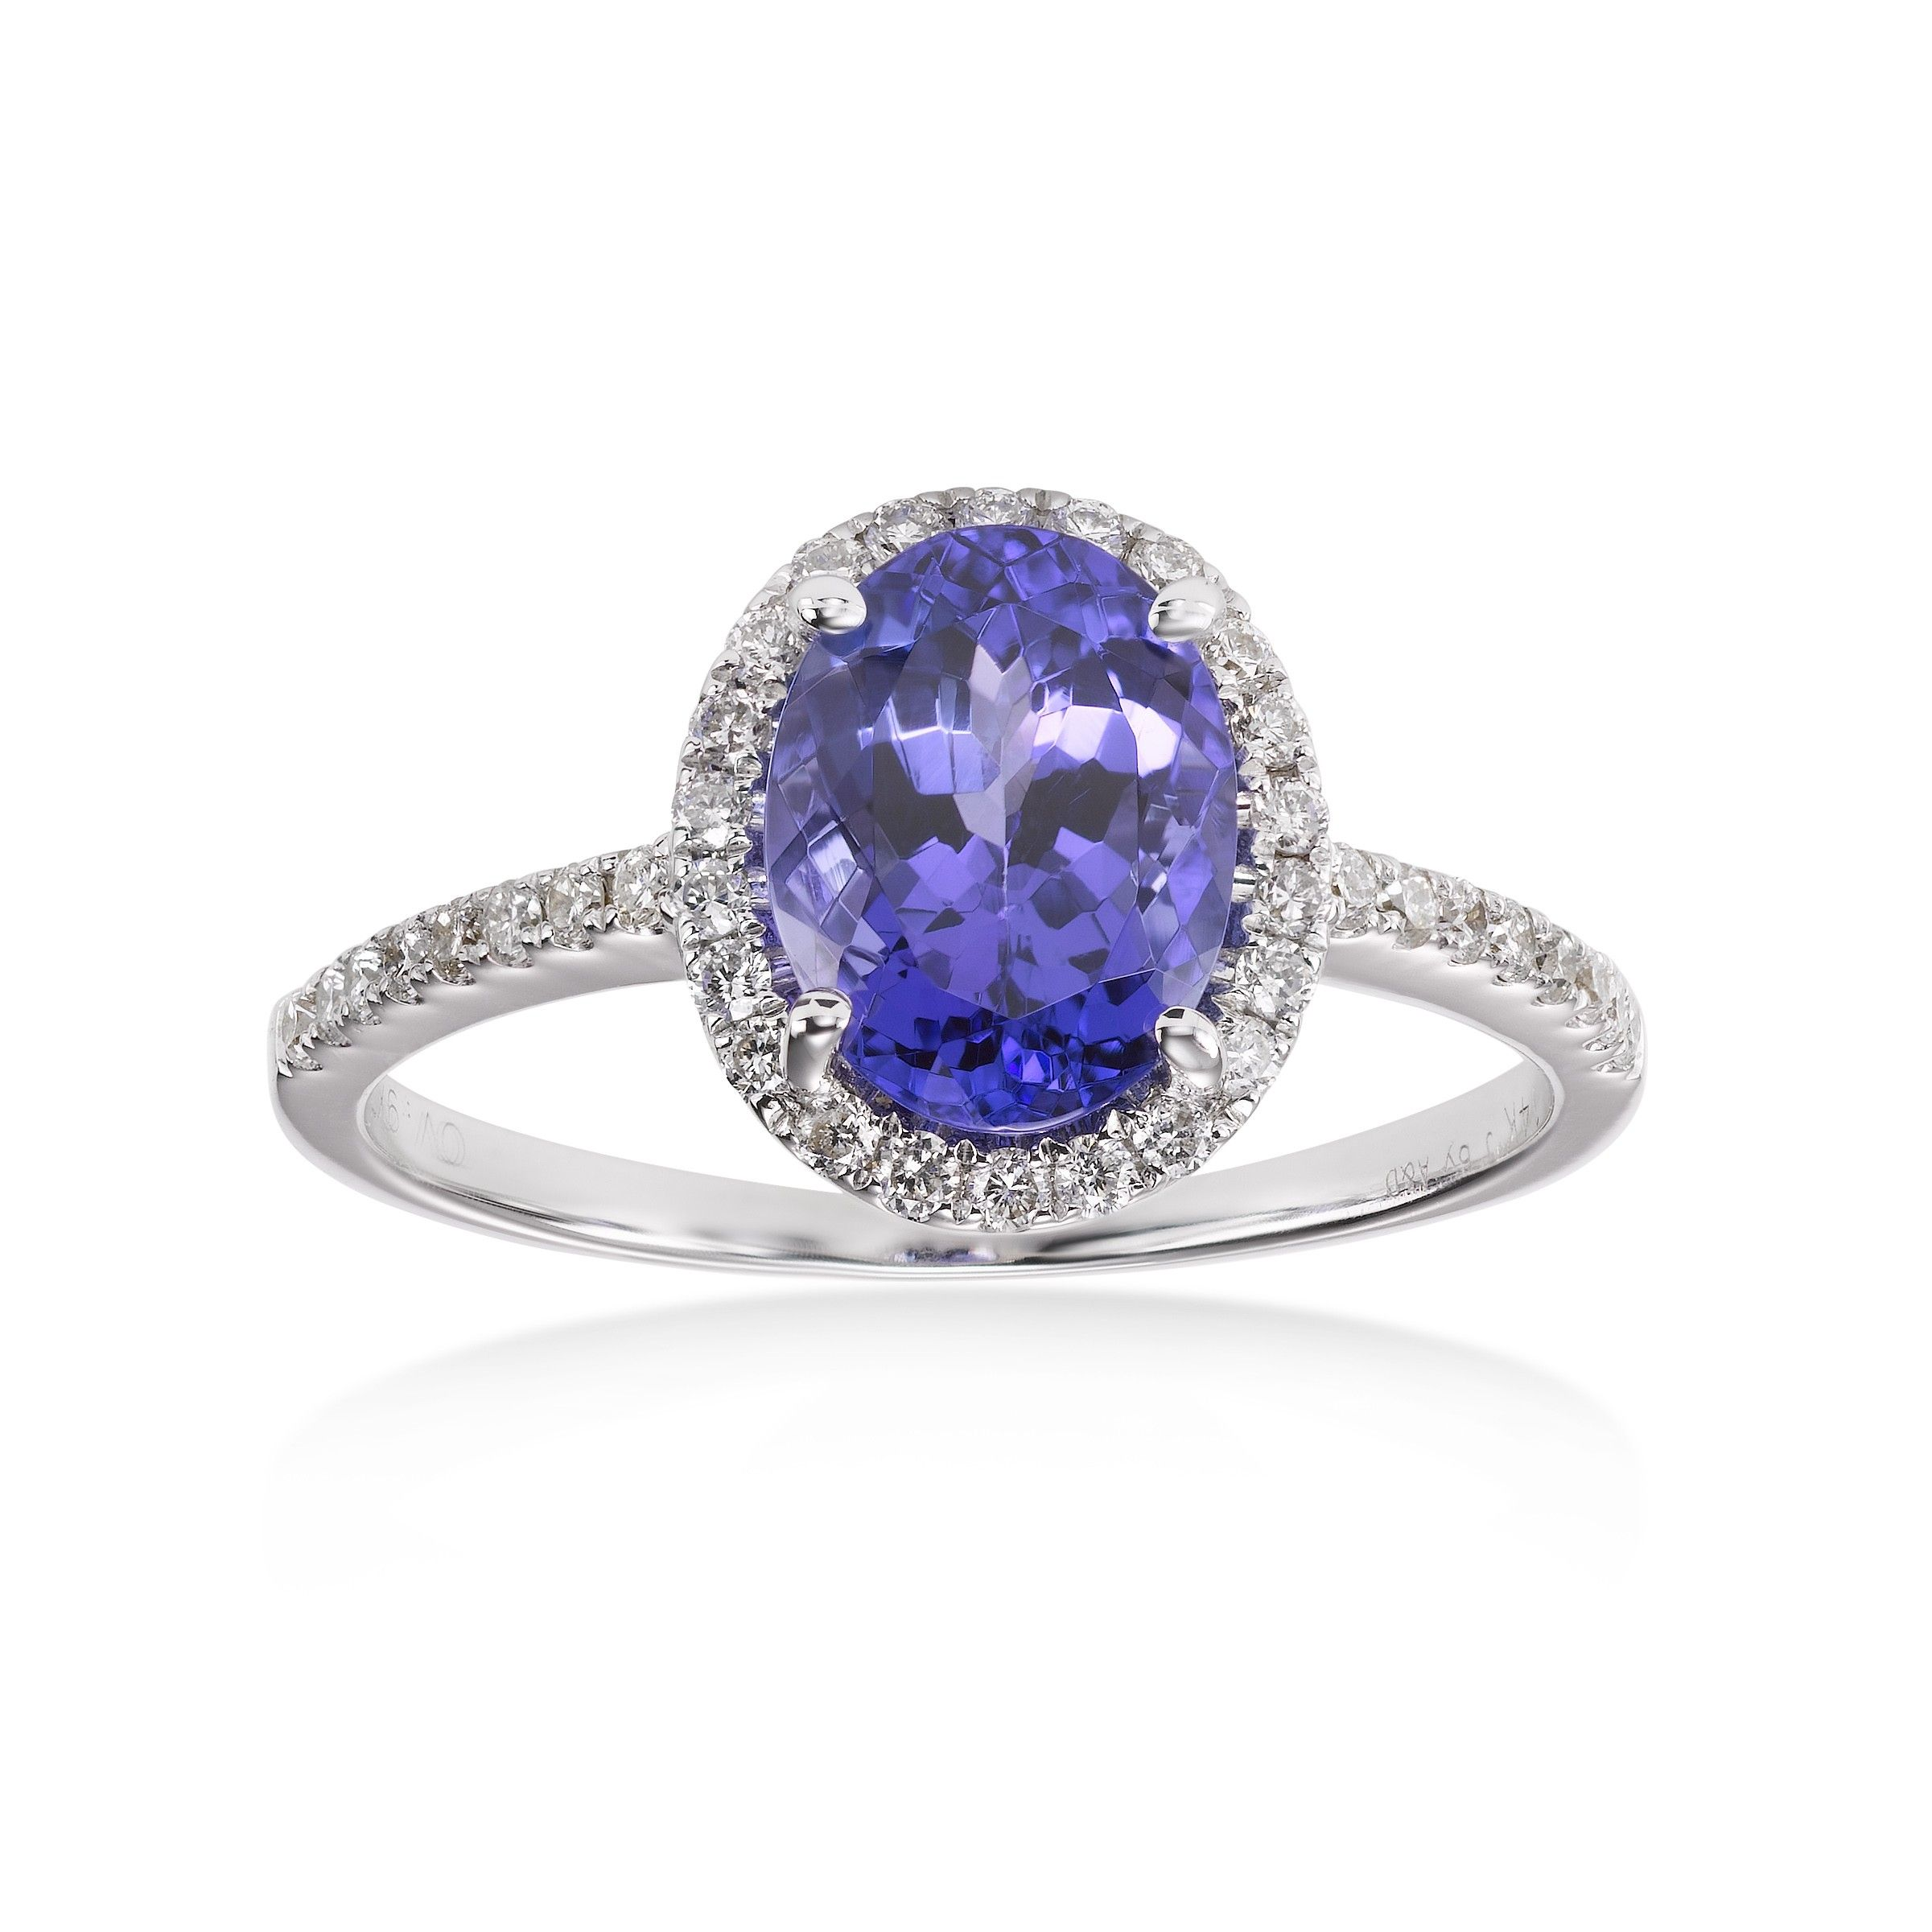 Tanzanite is the third and newest of December's appointed birthstones -- lucky you, born this month! This lovely oval tanzanite and diamond ring isin a 14k white gold setting. We have a number of lovely tanzanite rings among our December birthstones. Click link to see!